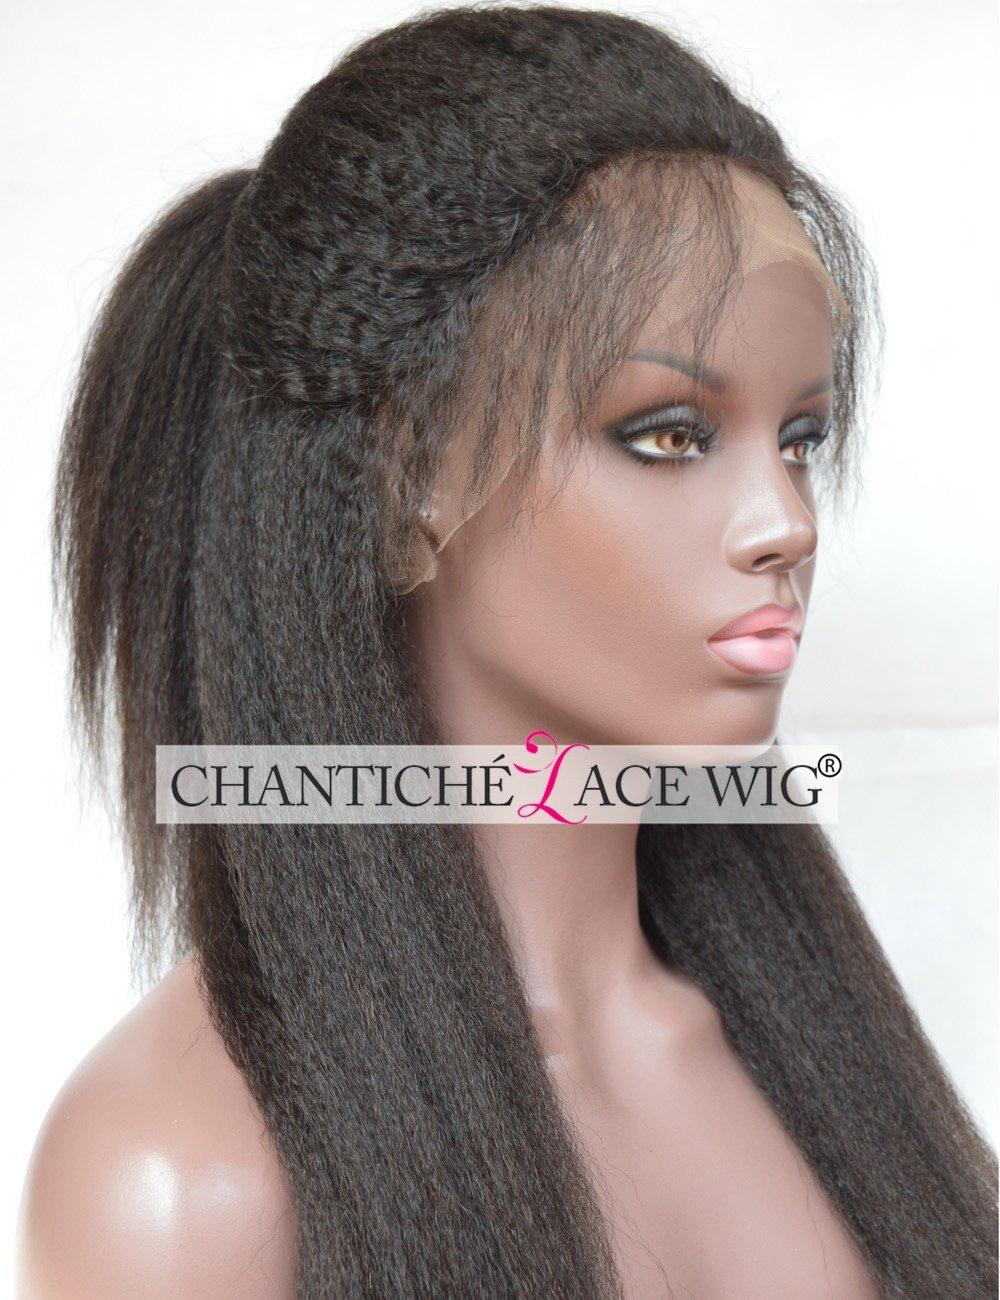 Chantiche Natural Looking Italian Yaki Glueless Full Lace Wigs with Baby Hair for Black Women Best Brazilian Remy Human Hair Wig 130 Density 16inch Natural Color by Chantiche Lace Wig (Image #1)